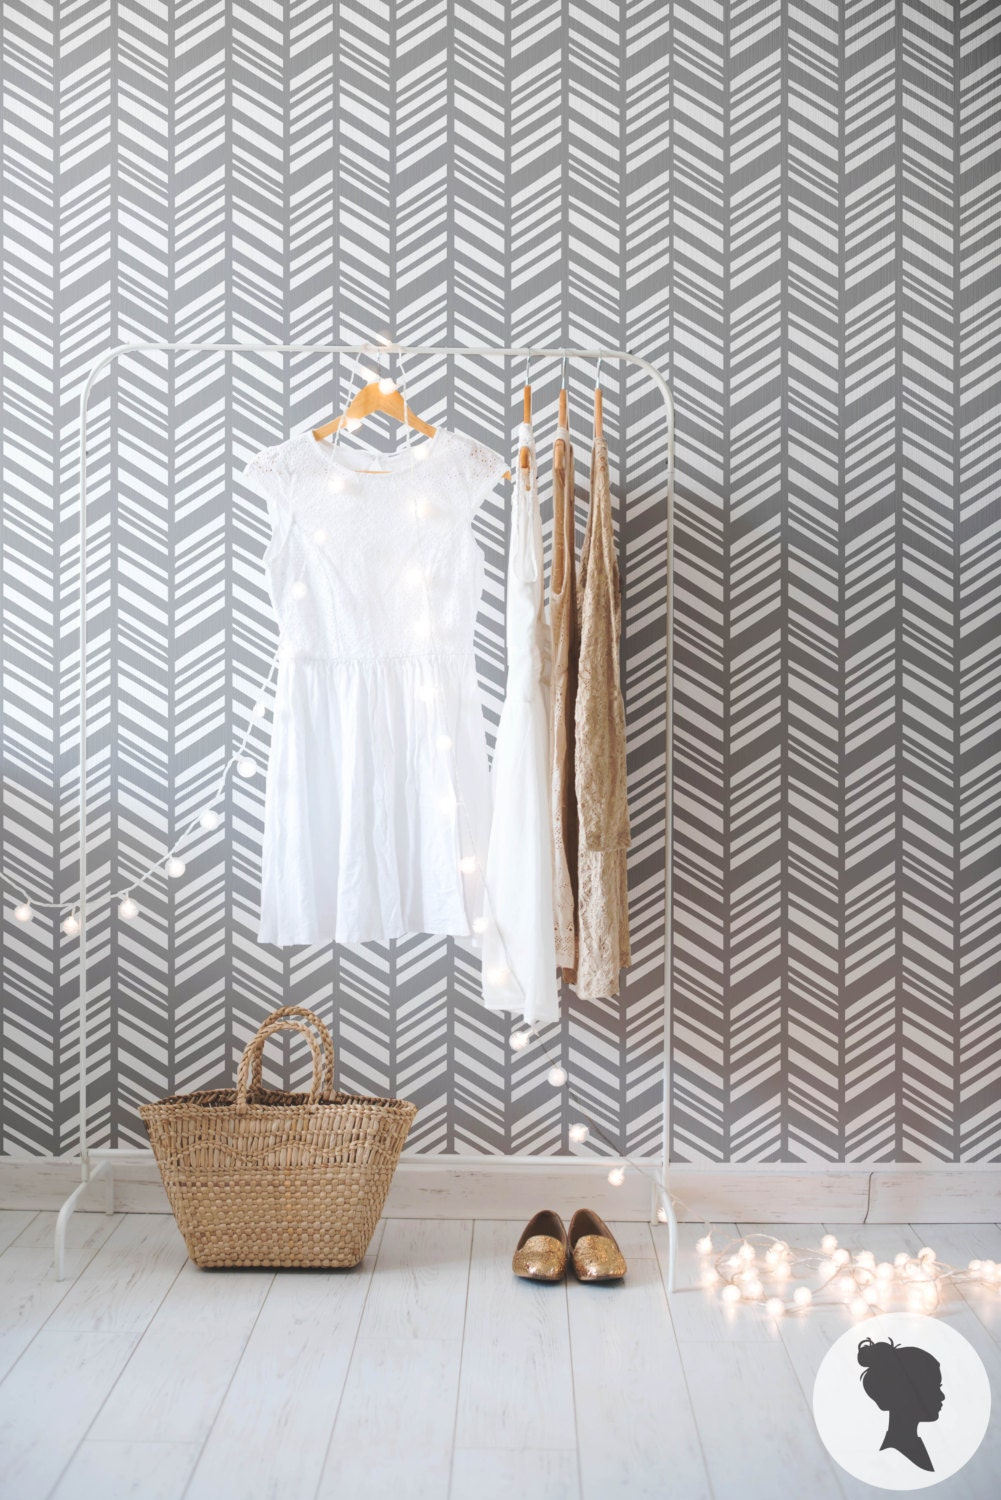 Removable Wallpaper herringbone removable wallpaper / traditional or self adhesive